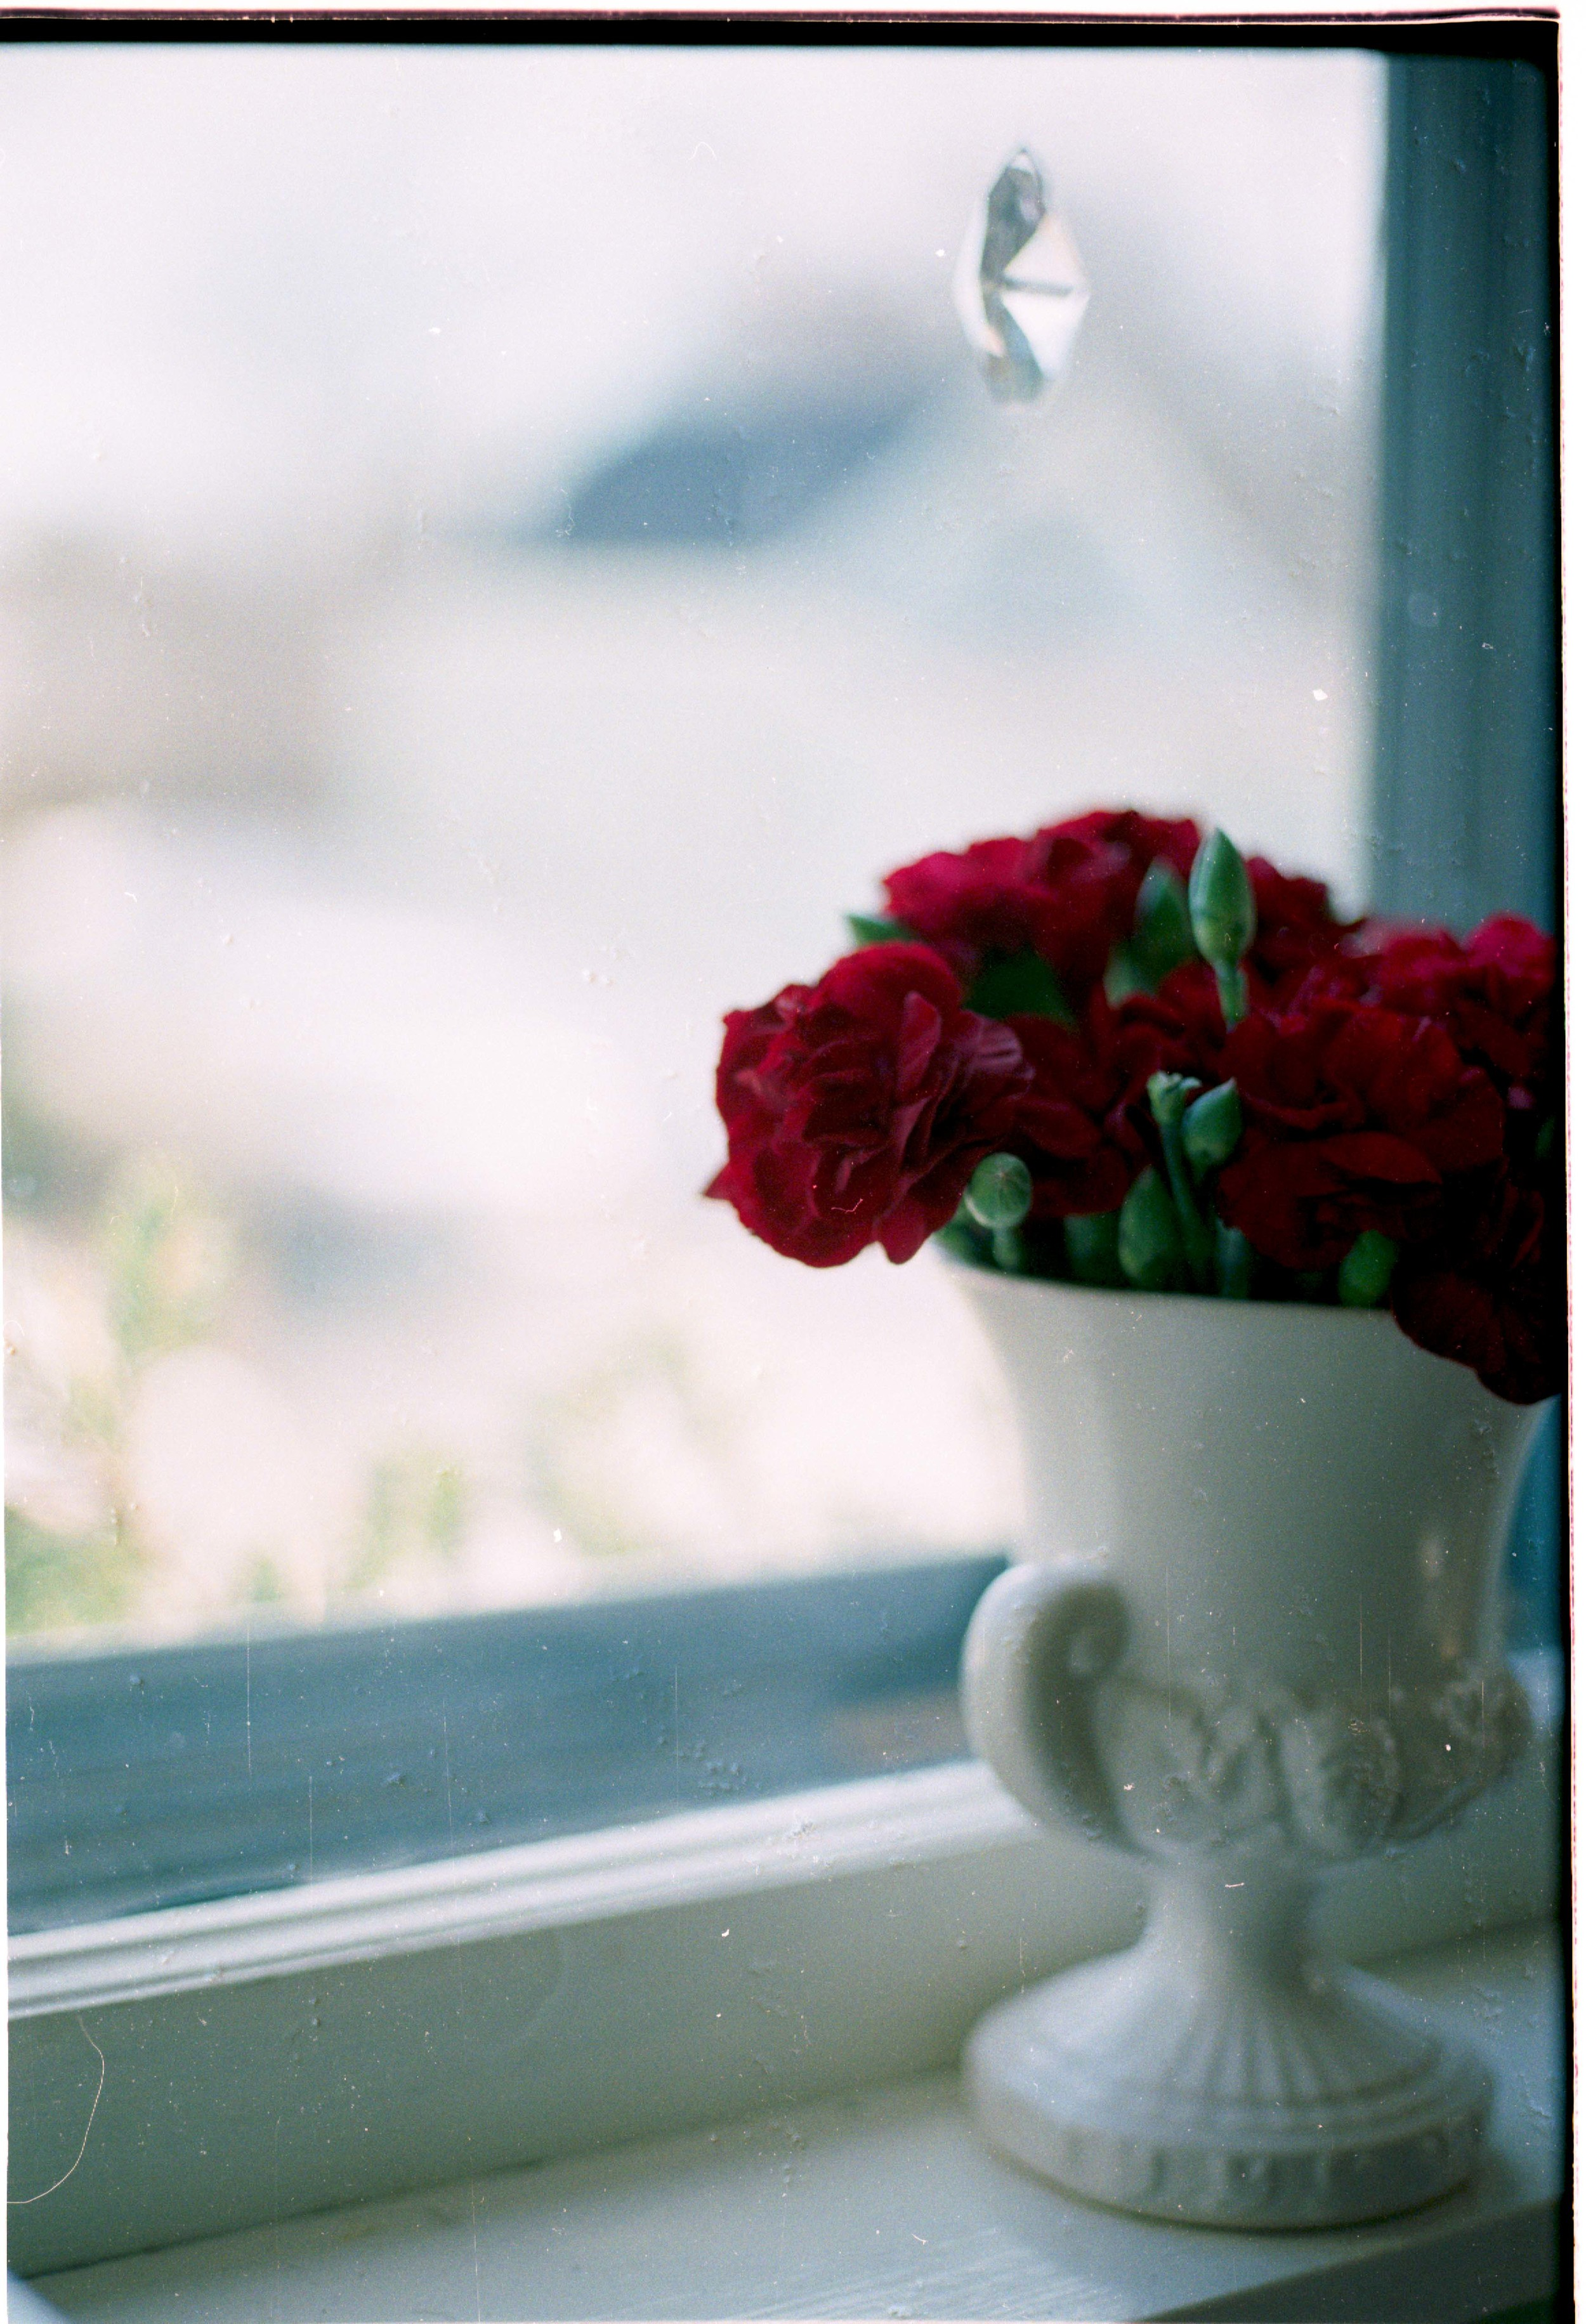 Roses Kitchen Window-1.jpg